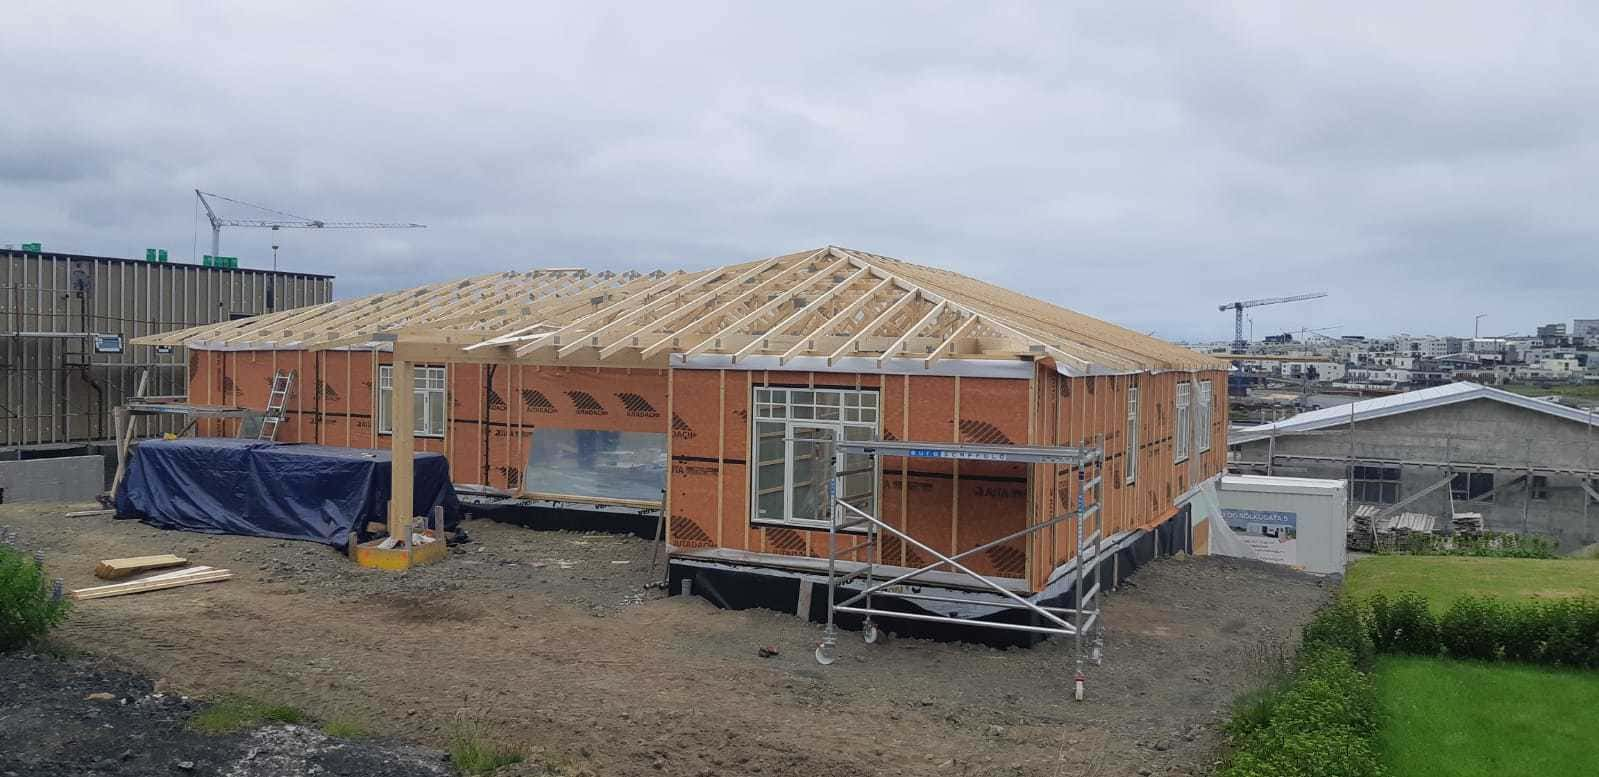 Production of Tivo wooden frame and modular houses using Freimans roof constructions